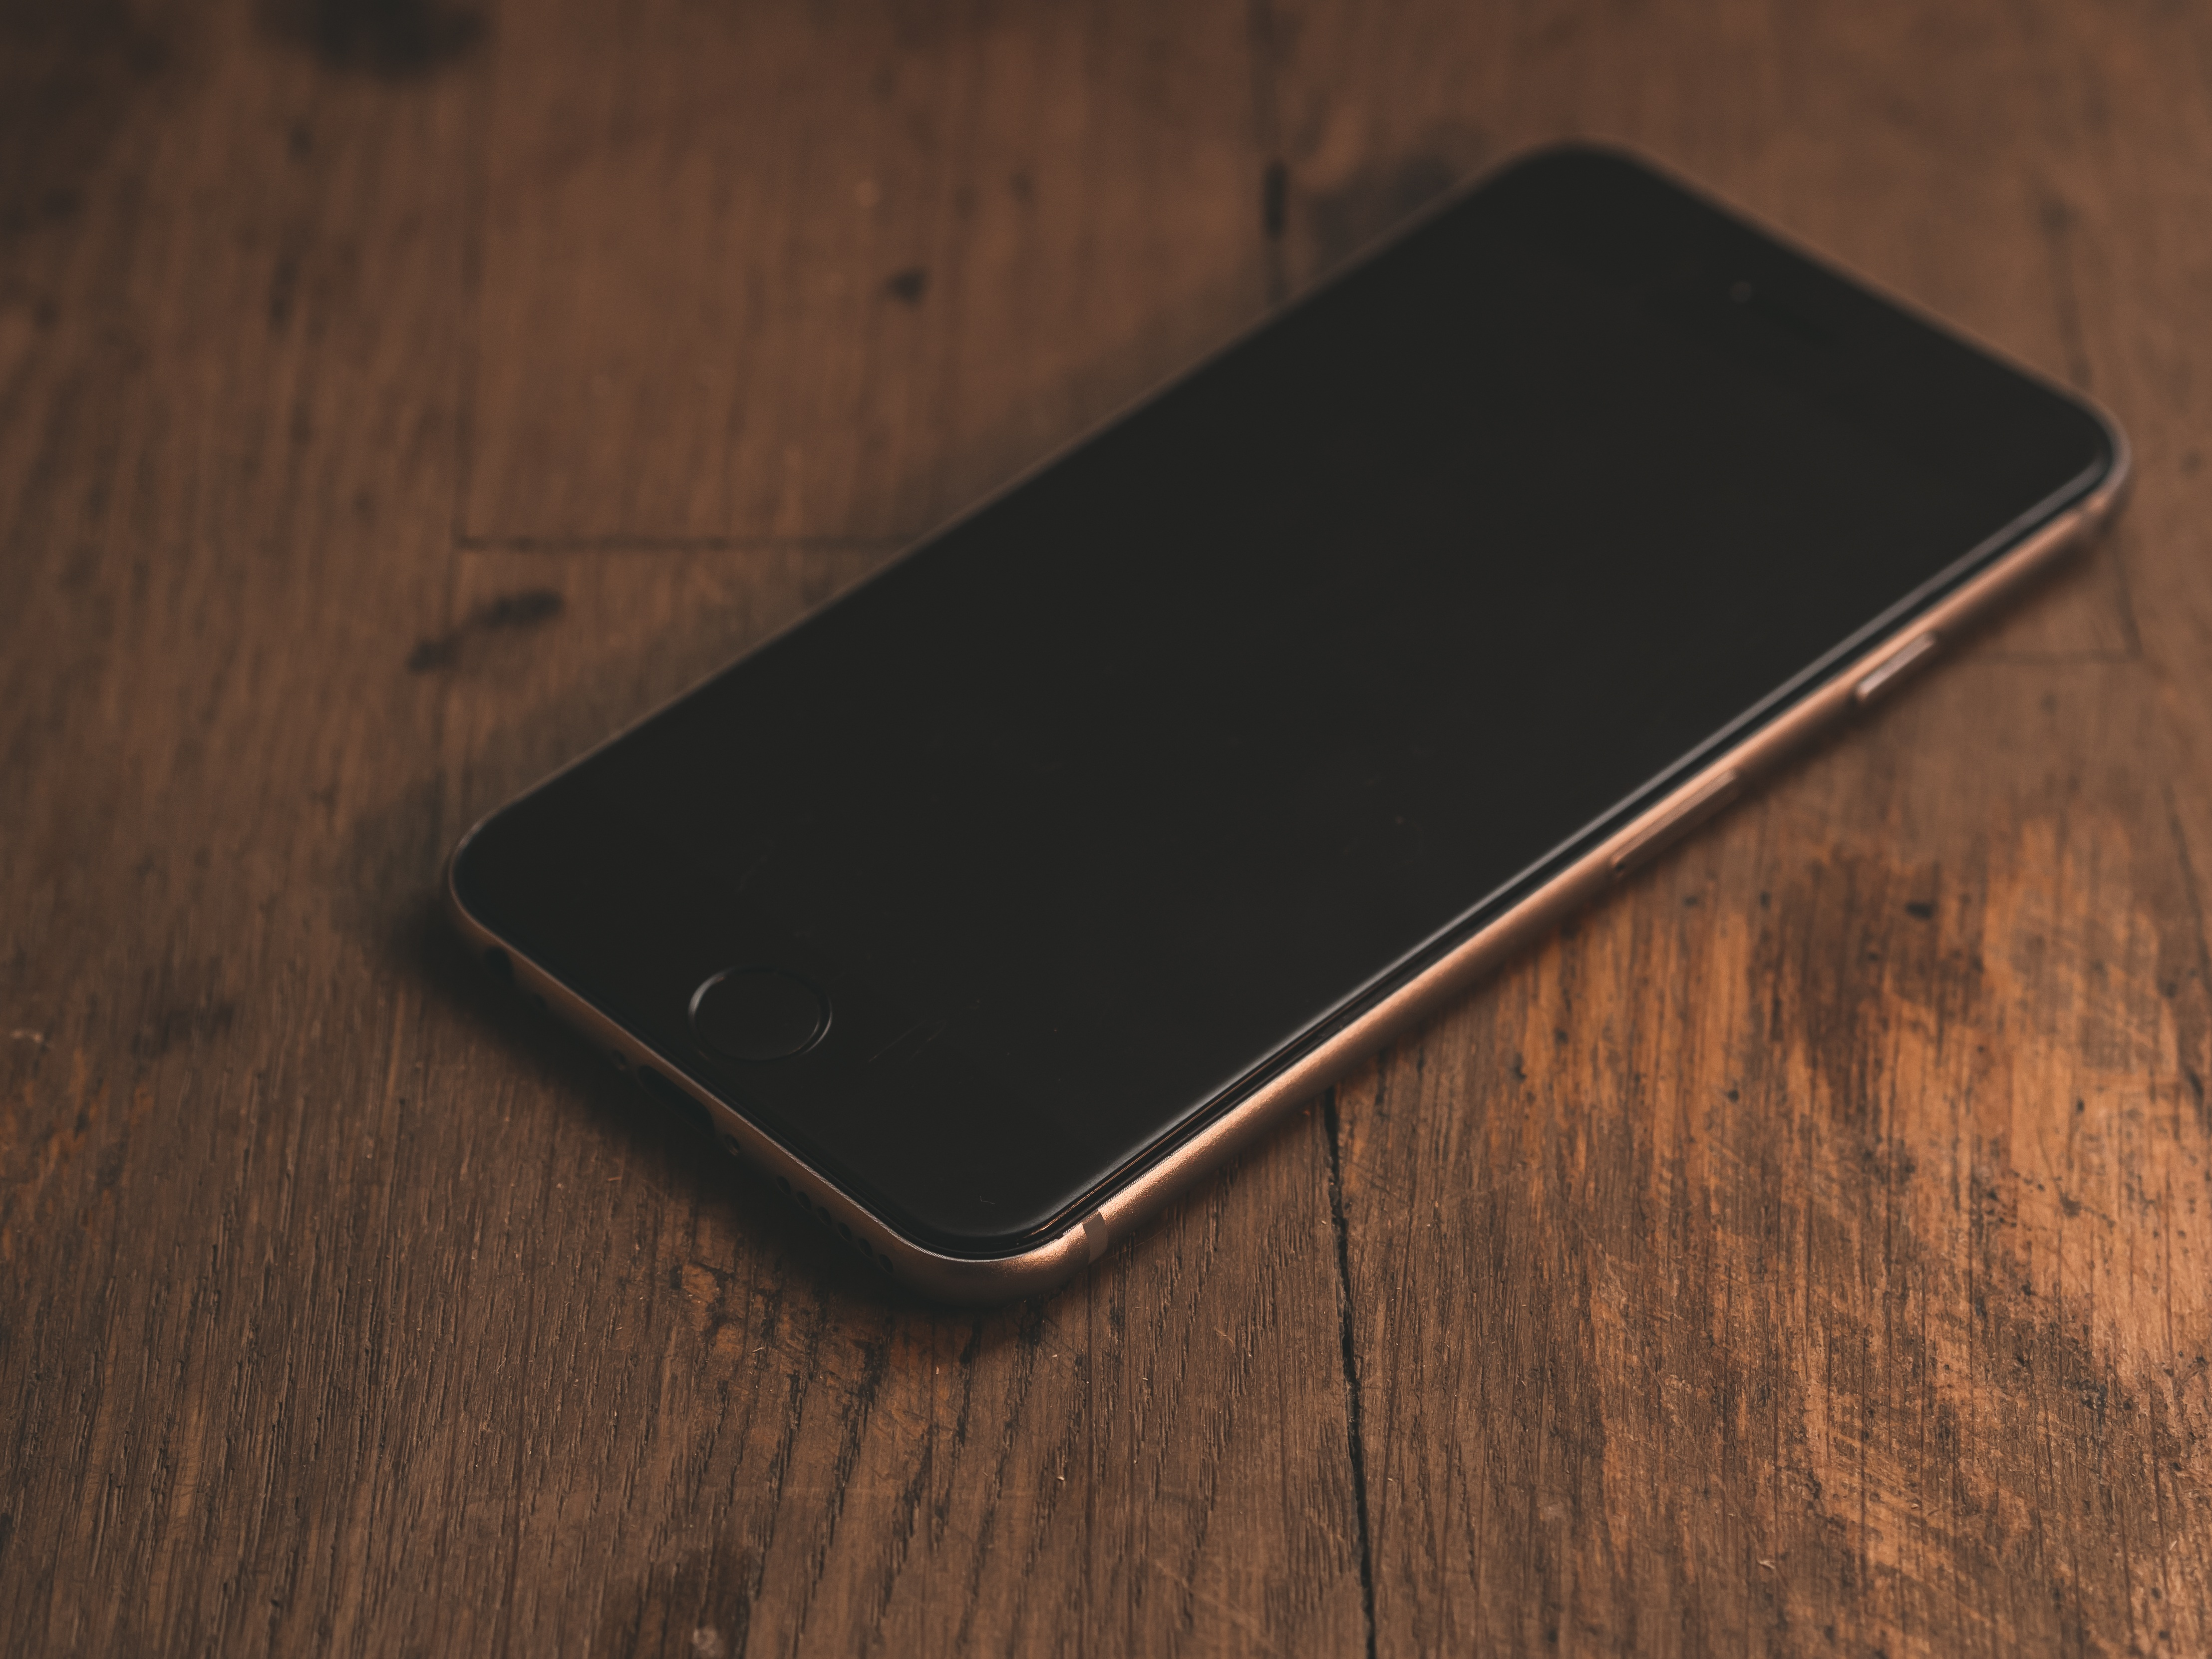 Free Images : iphone, desk, smartphone, screen, table, wood ...